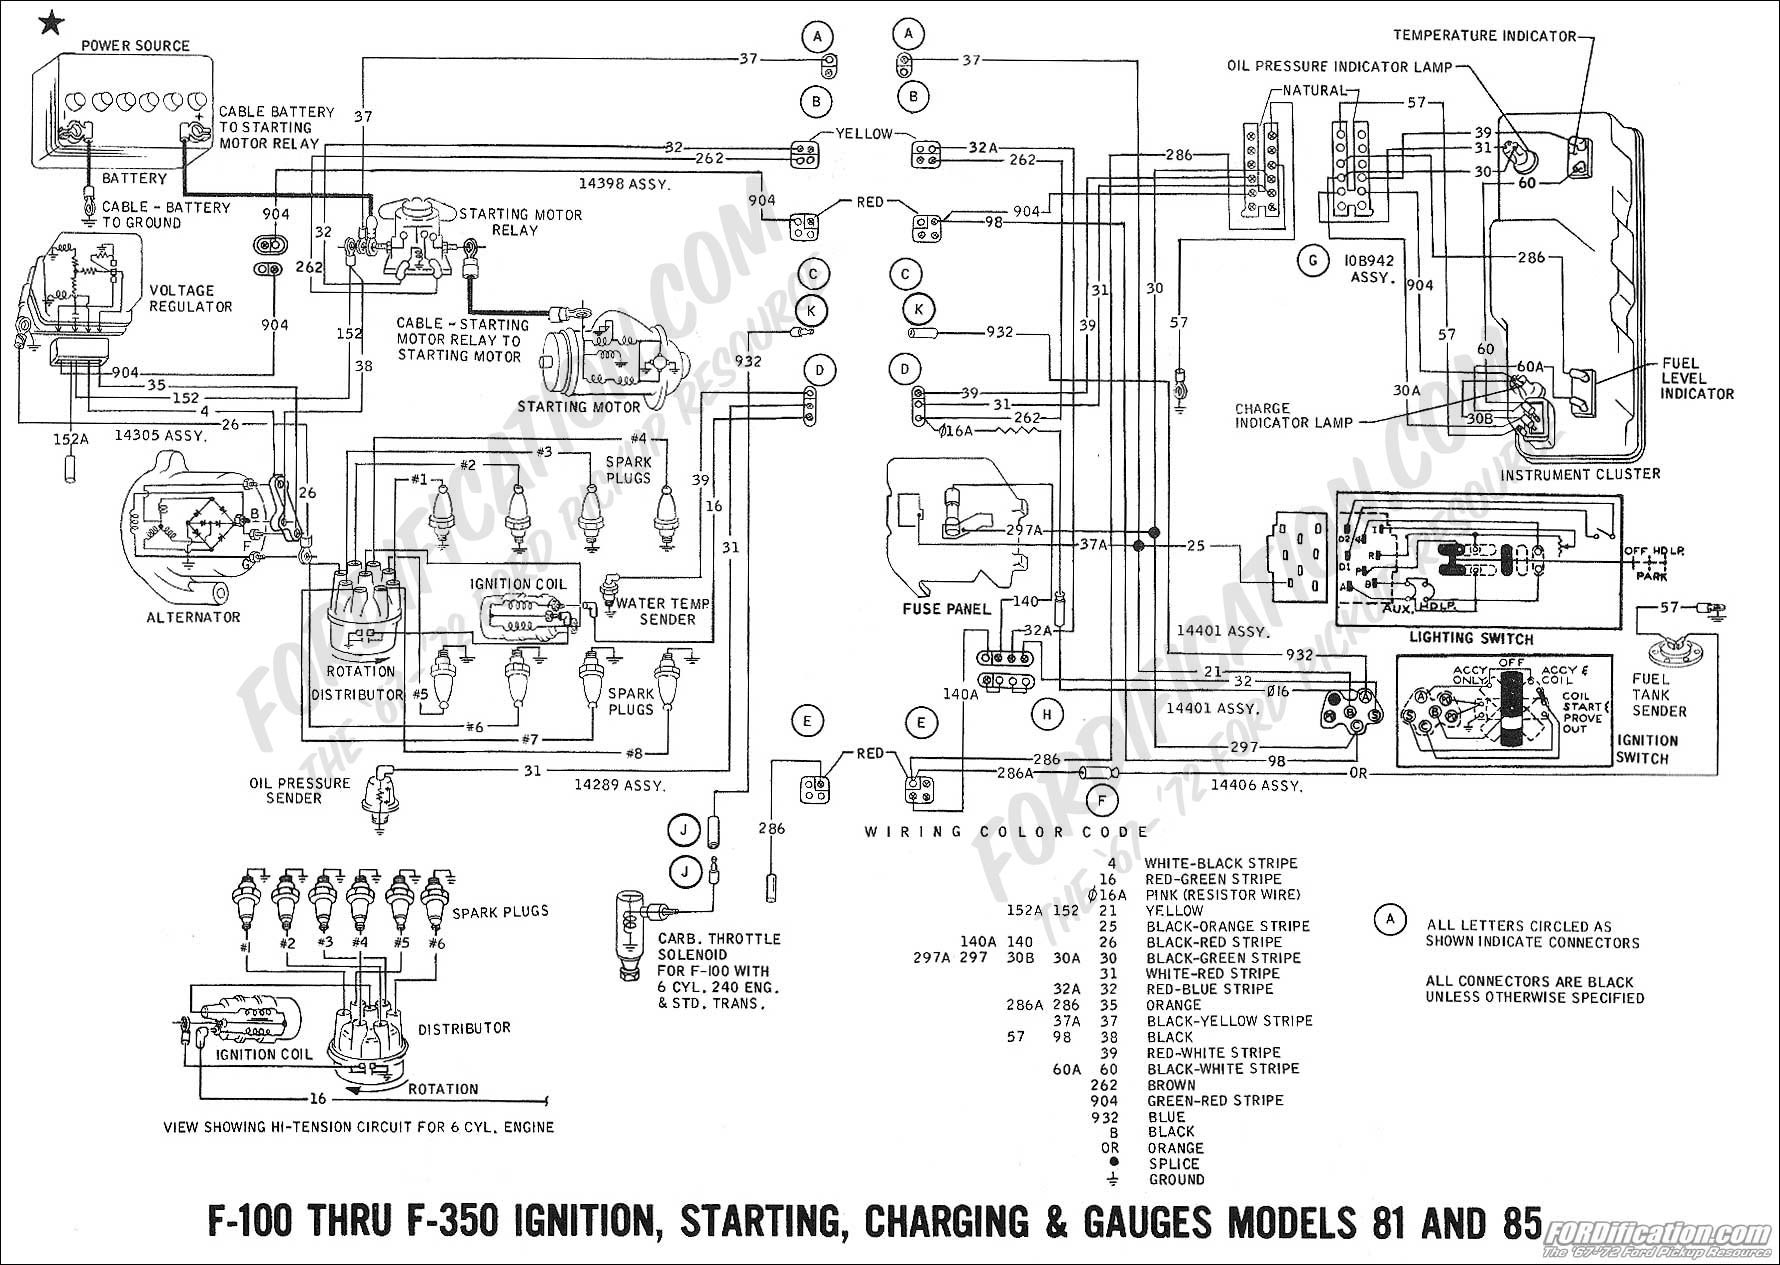 1995 Saturn Sl1 Engine Diagram: 1991 Saturn Wiring Diagram At Galaxydownloads.co